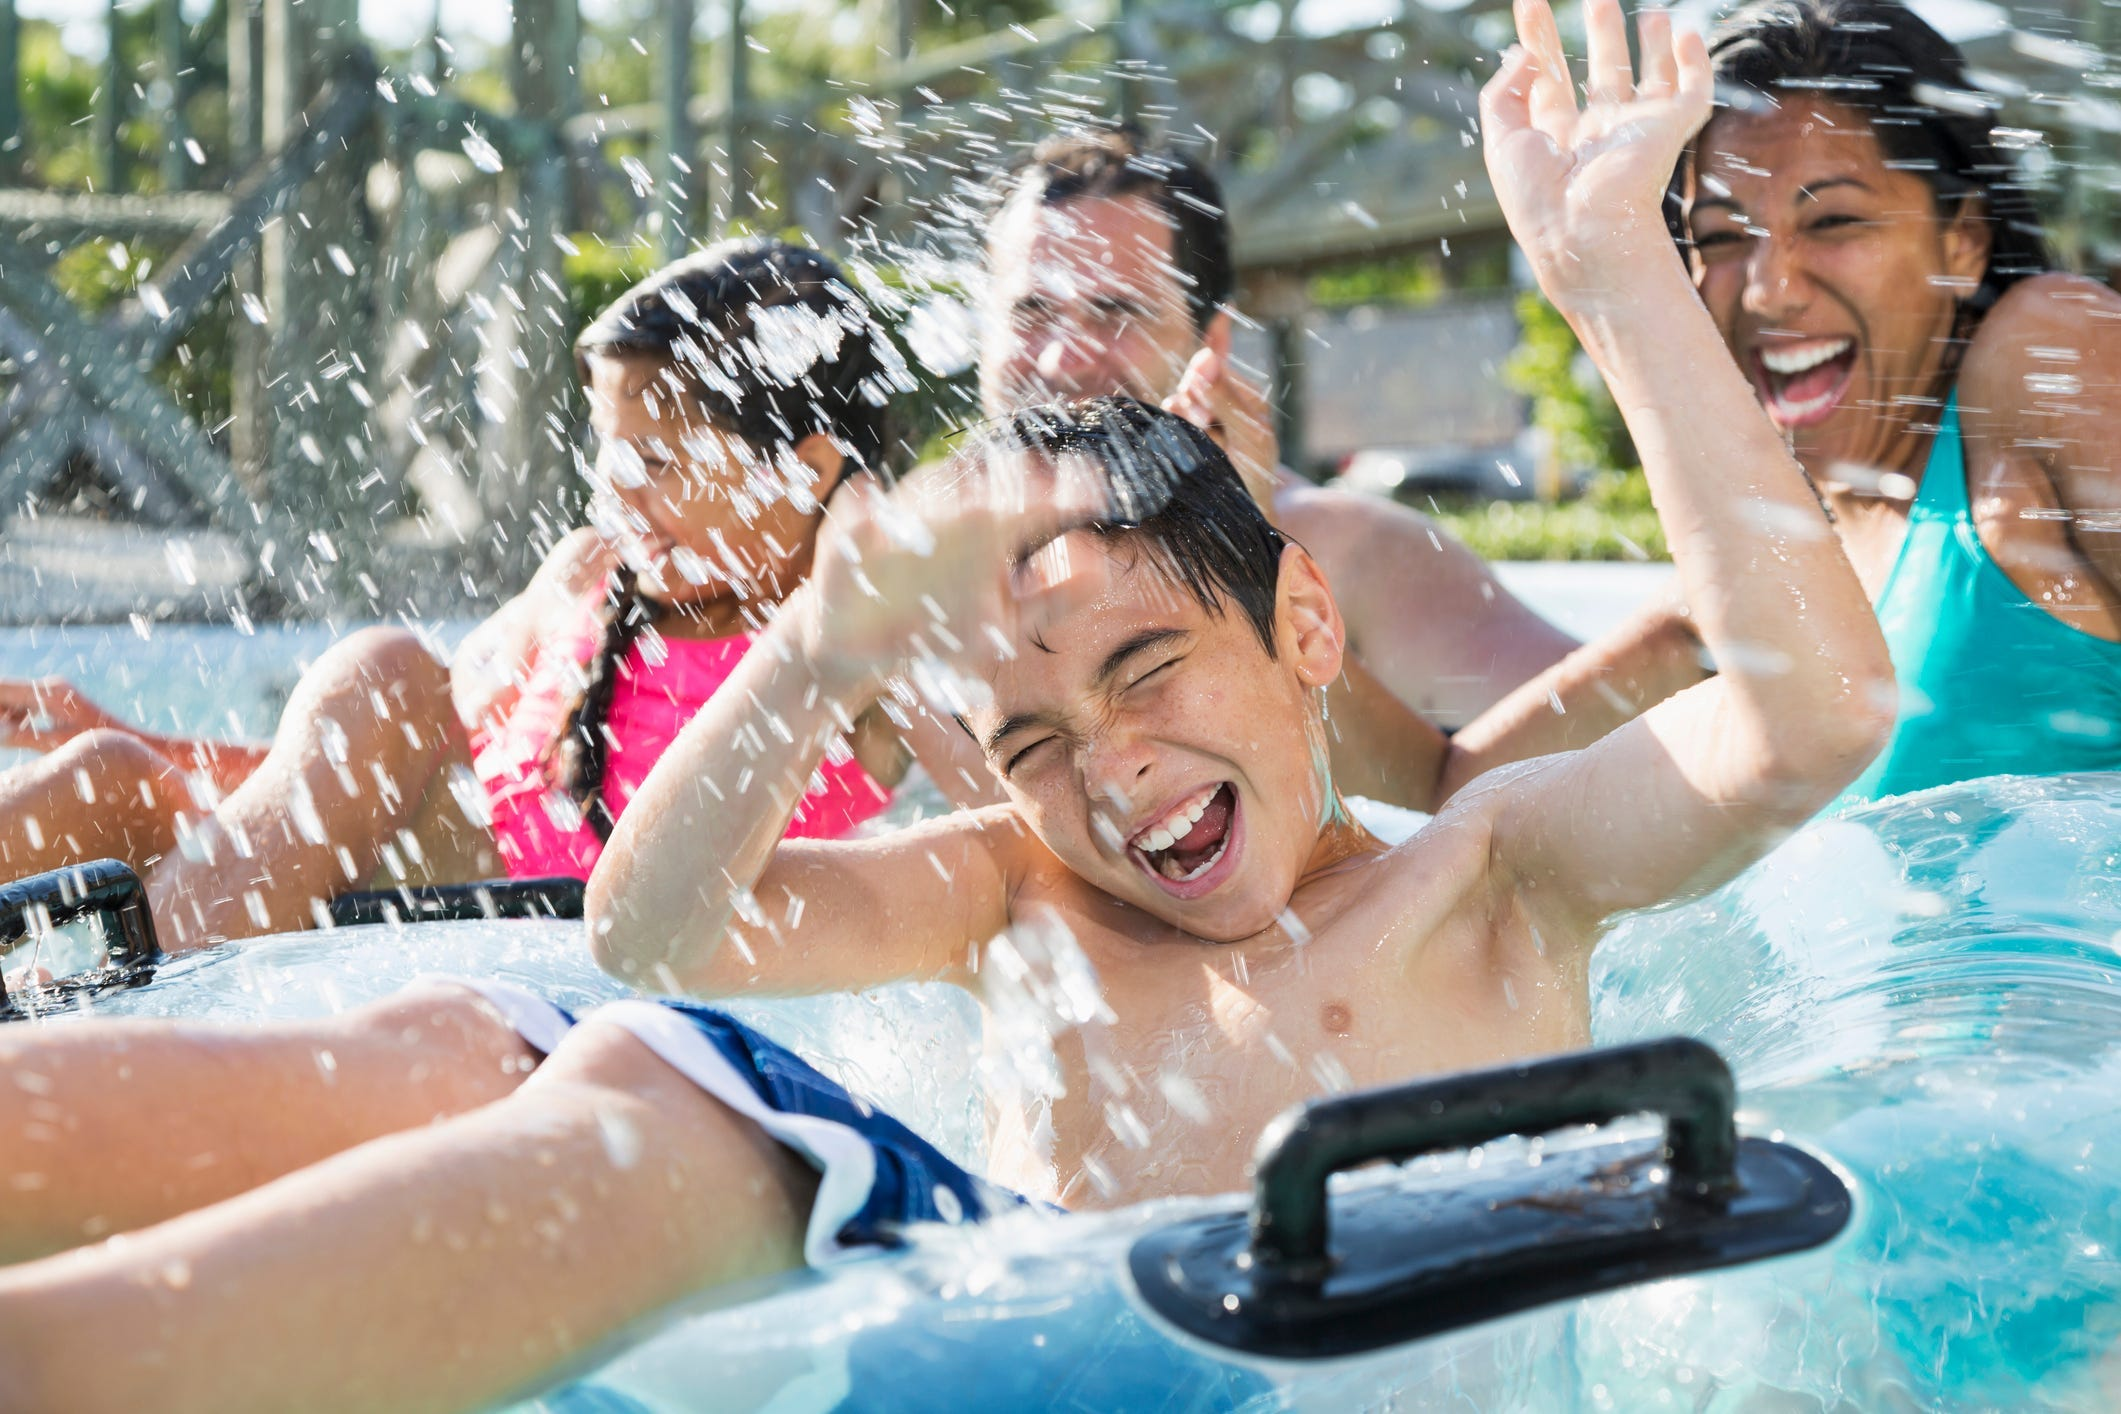 Vote now for the best amusement parks and water parks